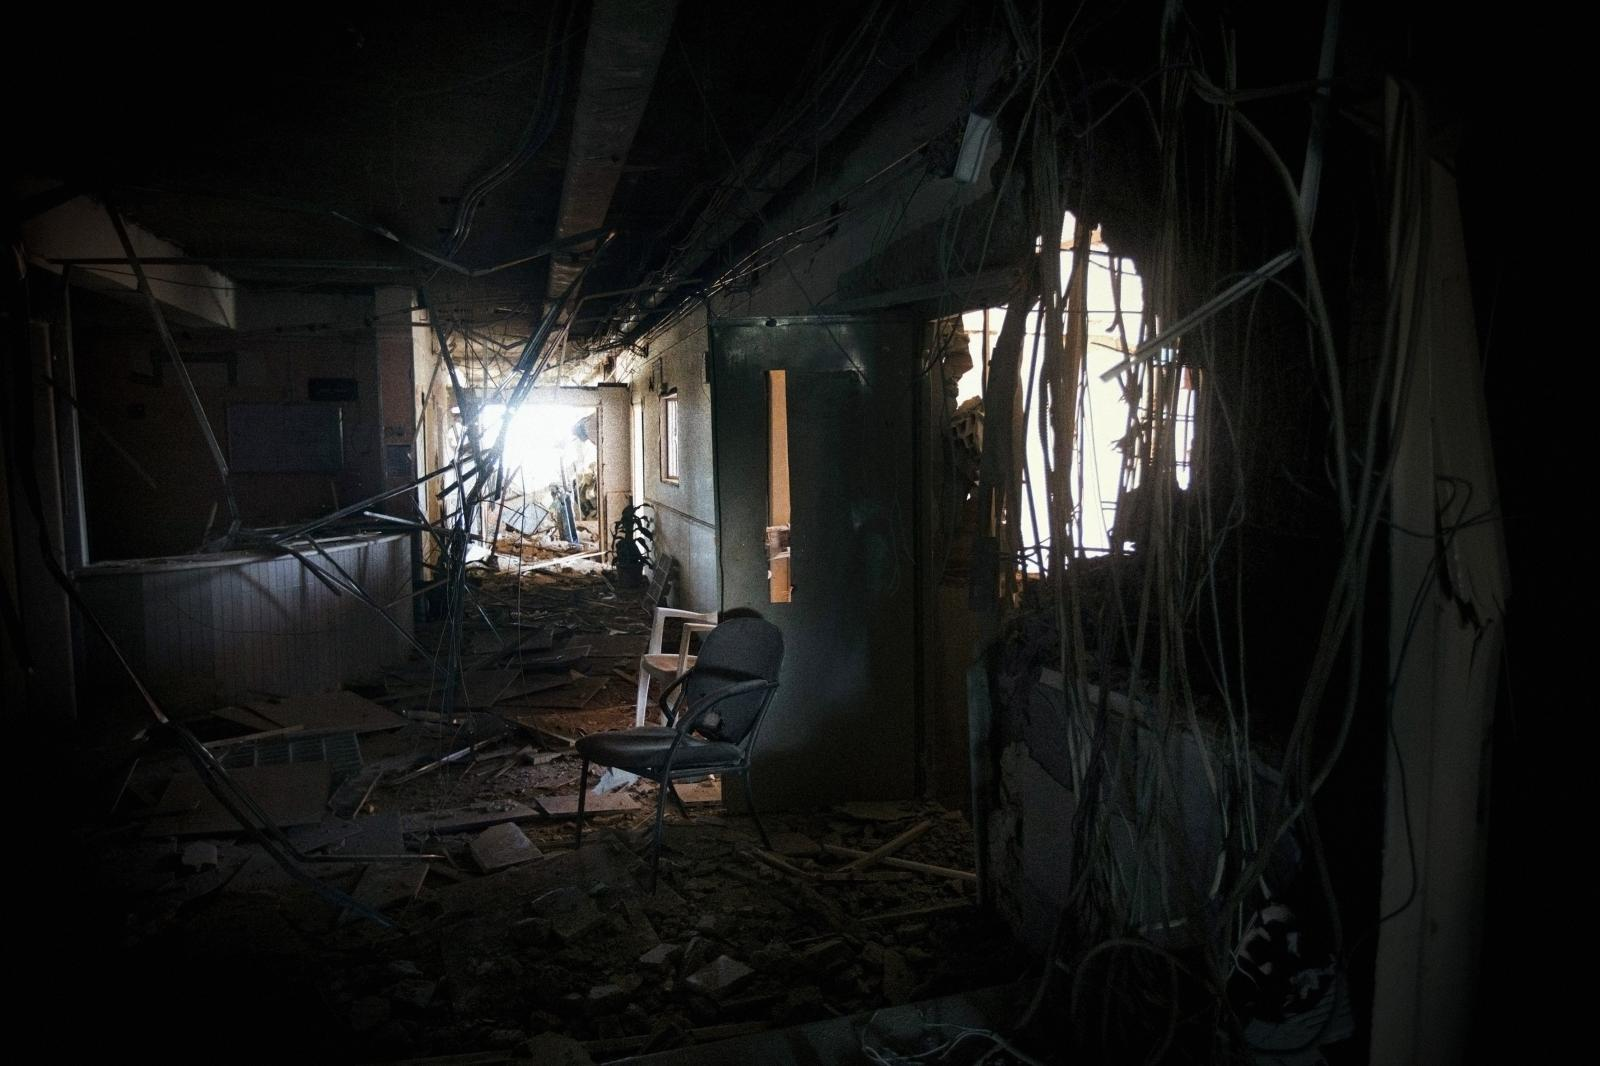 The inside of abandoned hospital ( above ) in Deir ez - Zor . This city was already divided by checkpoints that separated it into different zones controlled by the Free Syrian Army (FSA), Jabath al-Nusra (Al Qaeda in Syria) and ISIS.The other half of the city was under the control of the Assad regime ( Syria , 2013 ) .